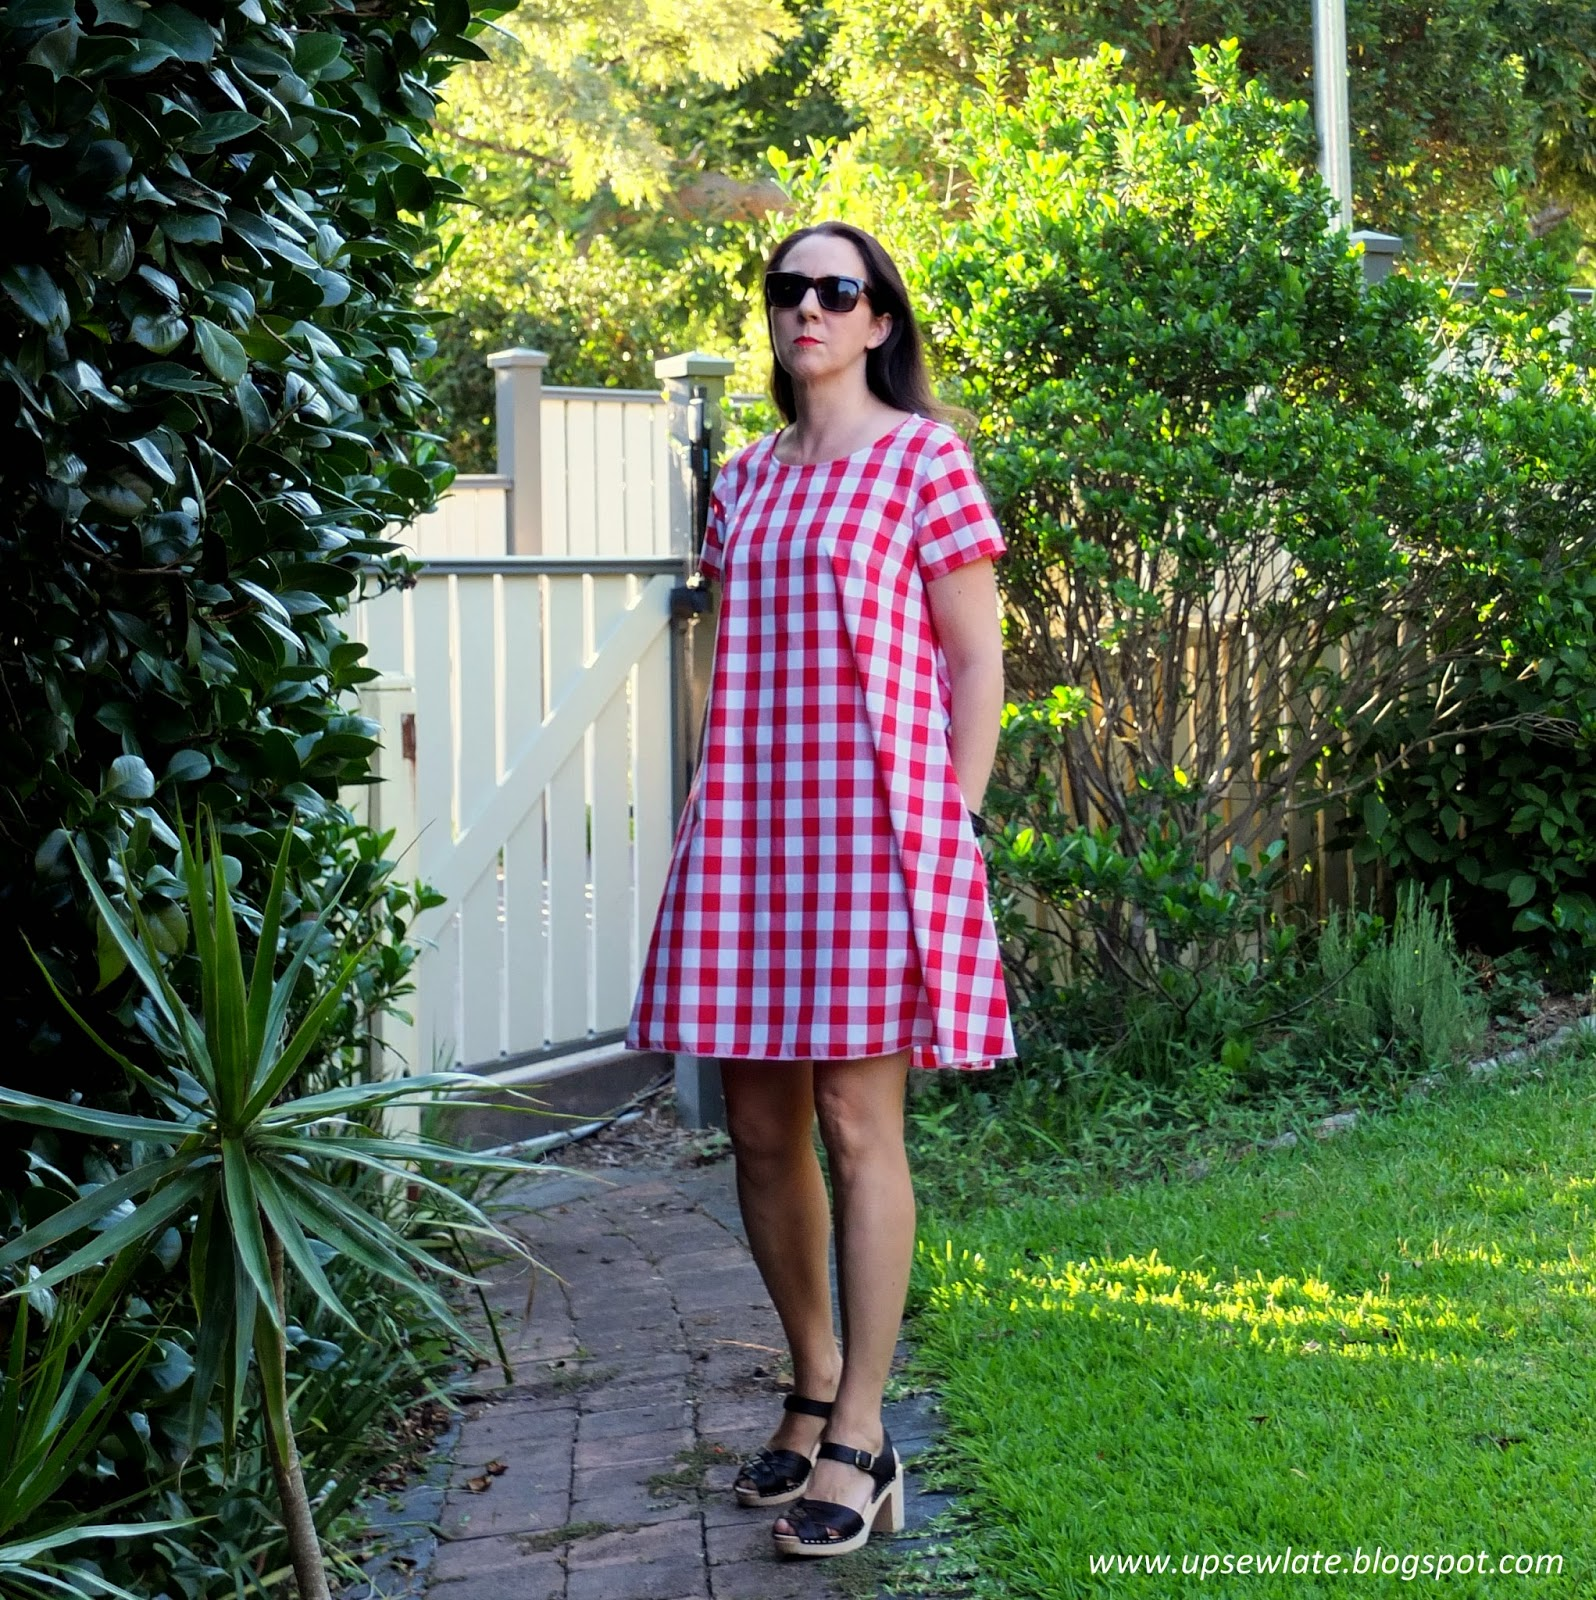 Up sew late picnic dress gabby i wish i could tell you the fabric was a cool 100 cotton or linen but sadly its just a cheap poly cotton from lincraft i simply fell for the oversized jeuxipadfo Gallery